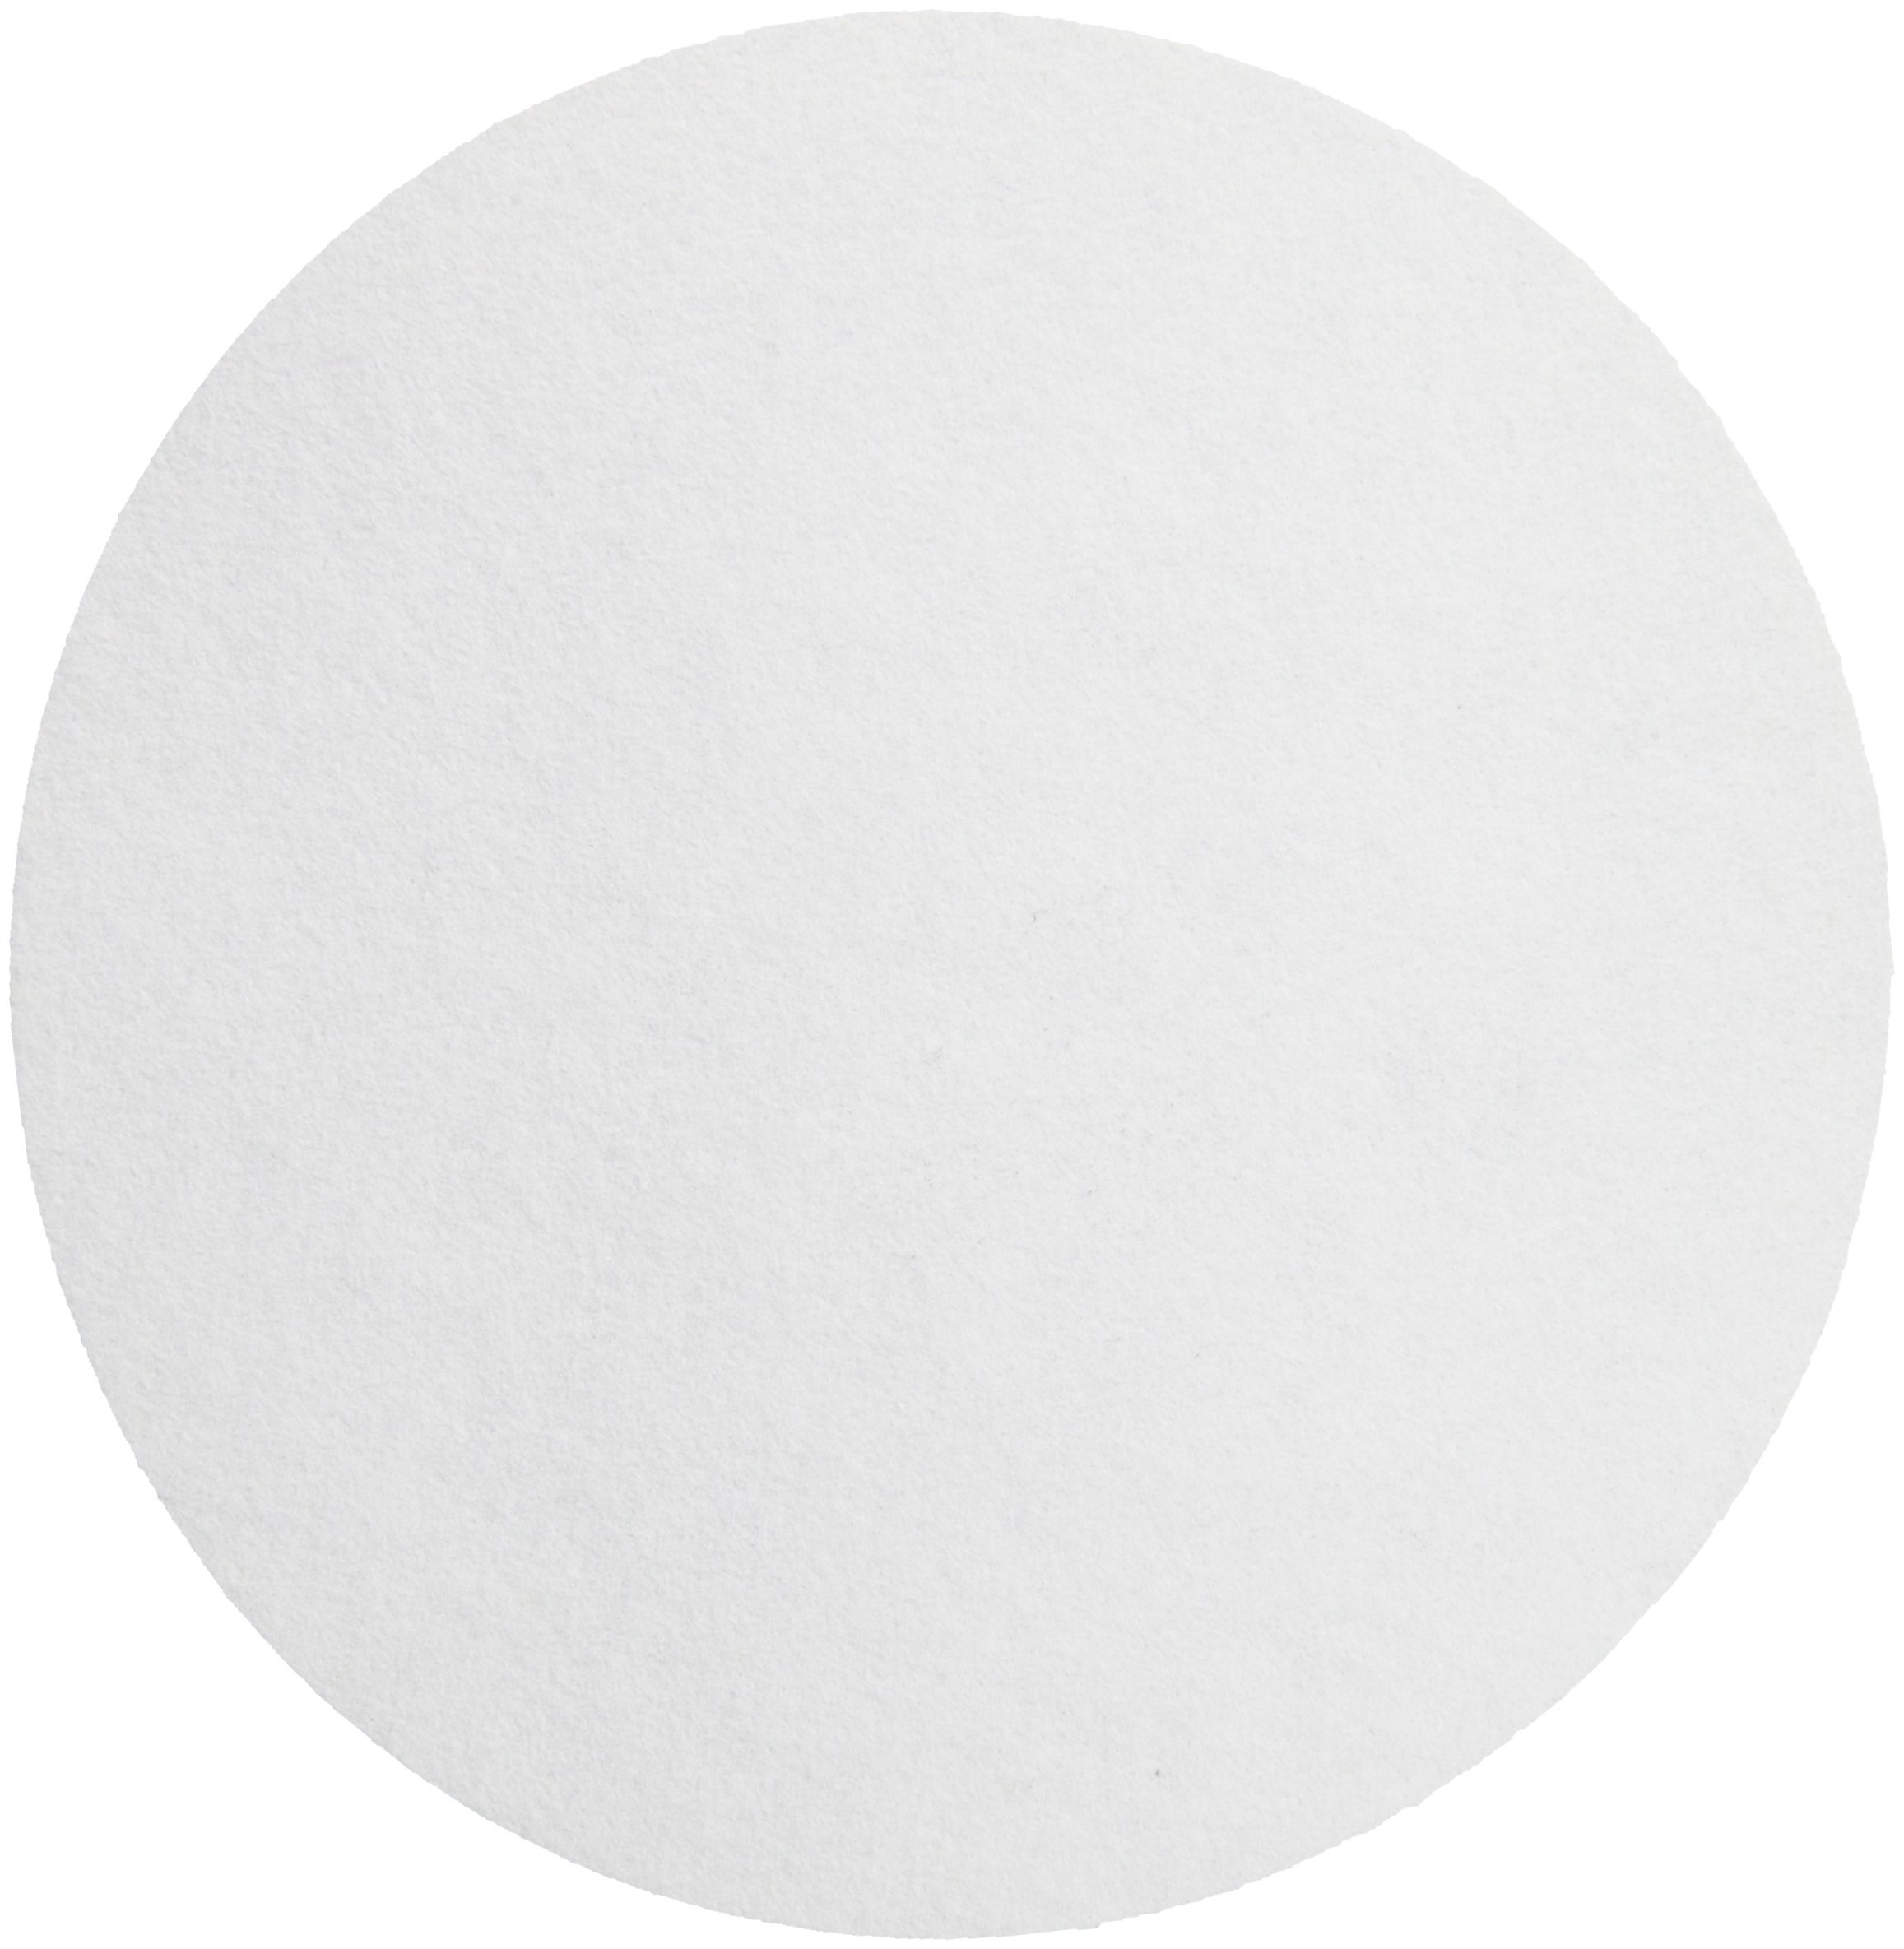 Whatman 1441-047 Quantitative Filter Paper Circles, 20 Micron, Grade 41, 47mm Diameter (Pack of 100) by Whatman